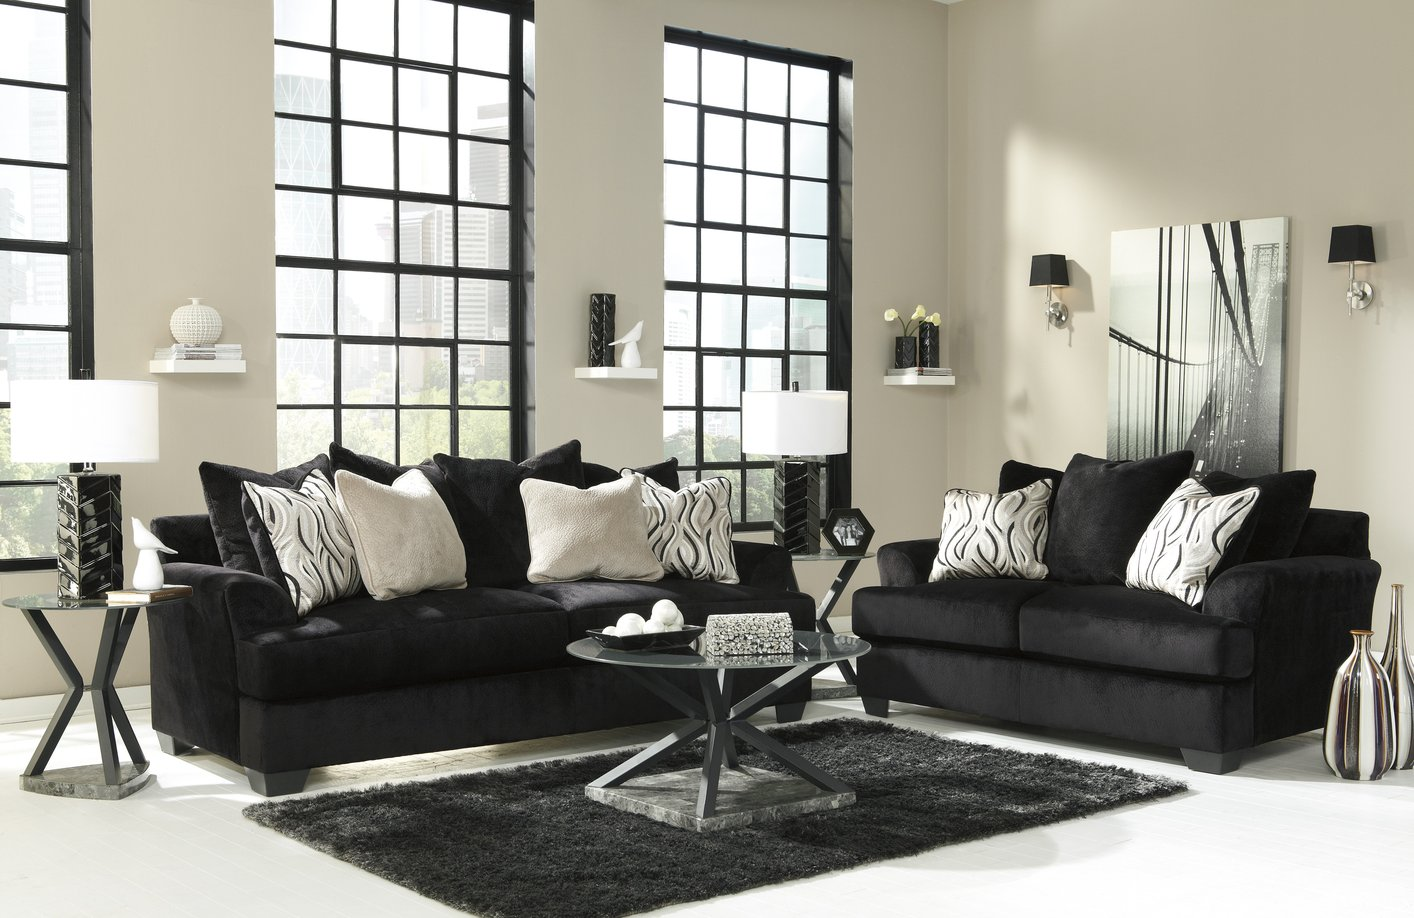 Ashley heflin 4720038 4720035 black fabric sofa and for Black fabric couches